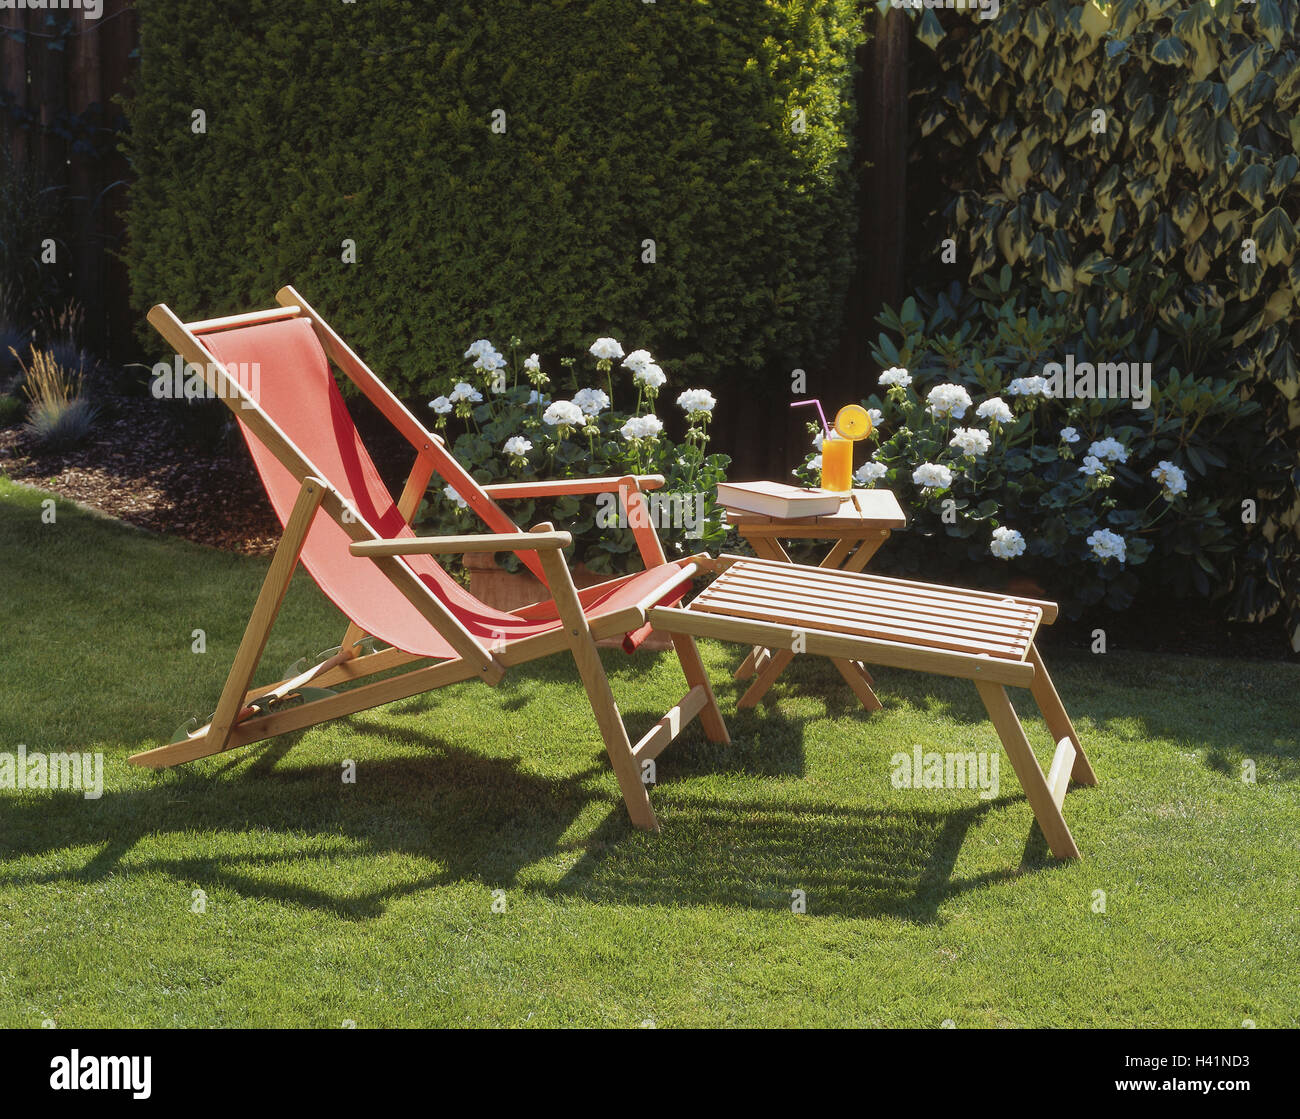 Garden, Deck Chair, Side Table, Drink, Book, Chair, Garden Chair, Folding  Chair, Leisure Time, Cosiness, Rest, Take It Easy, Leisure Time, Vacation,  ...